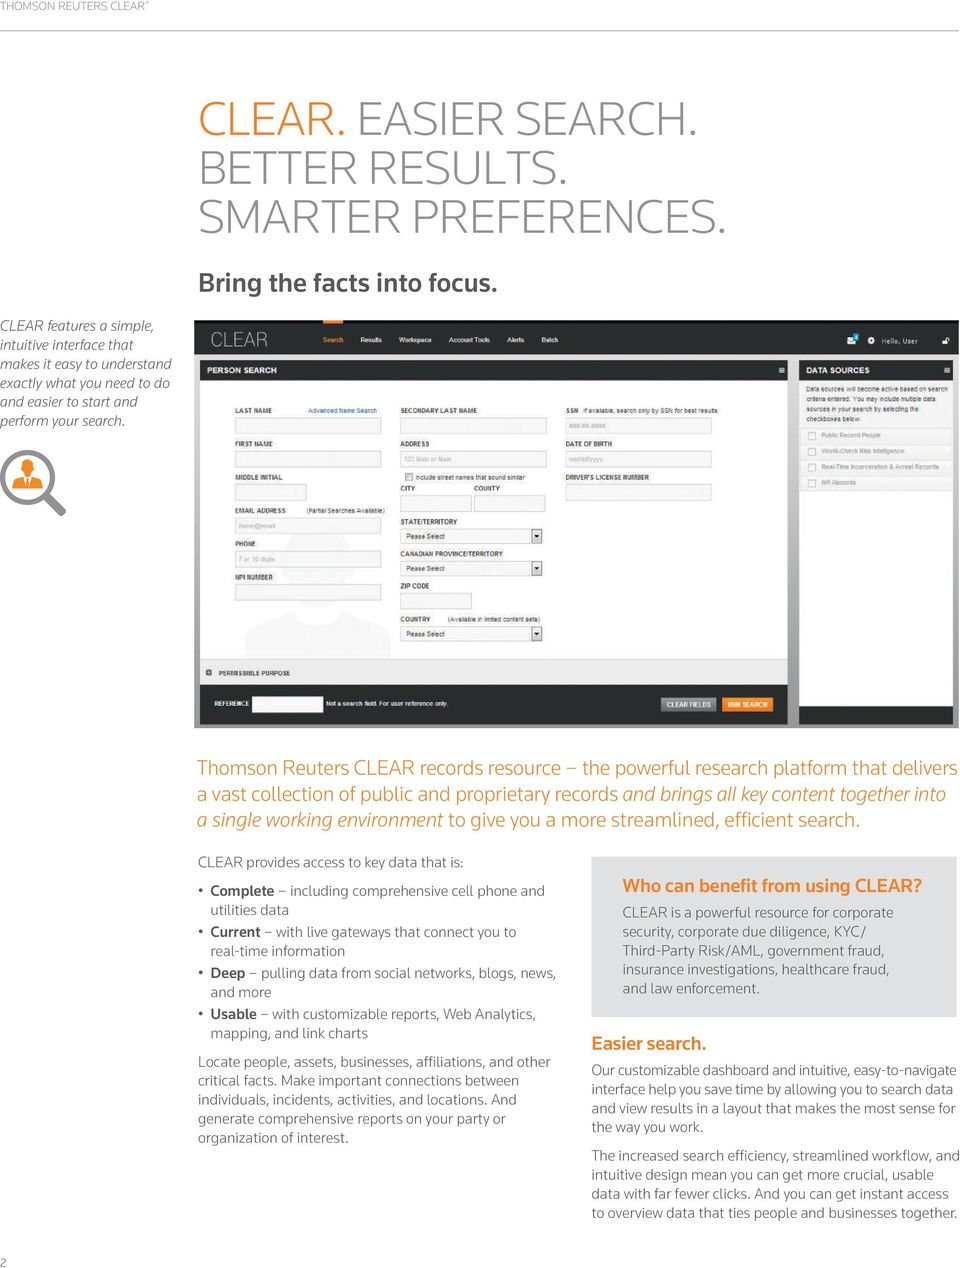 Thomson Reuters CLEAR THE SMARTER WAY TO GET YOUR INVESTIGATIVE